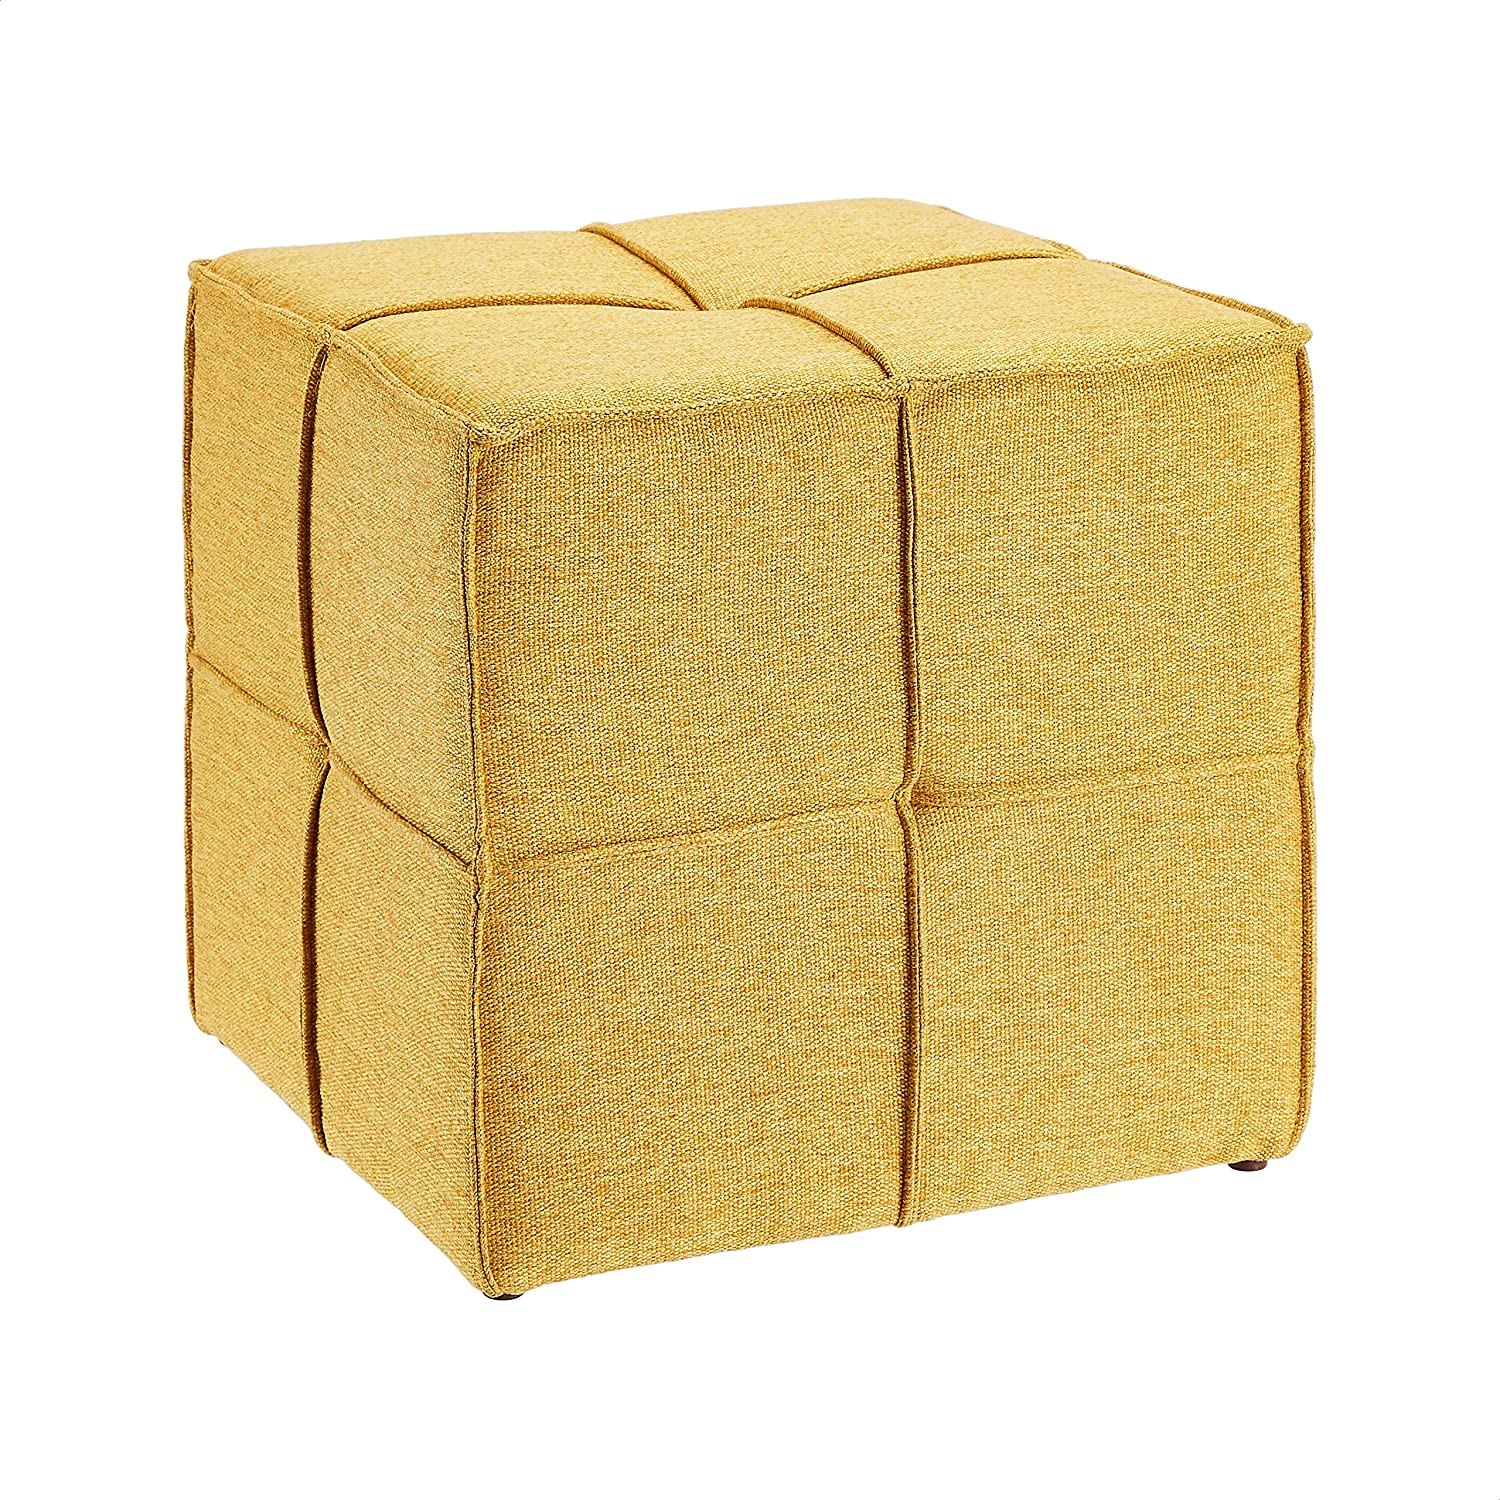 First Hill Delicate Square Colorado Springs Mall Bean yellow Ottoman New York Mall Light Bag